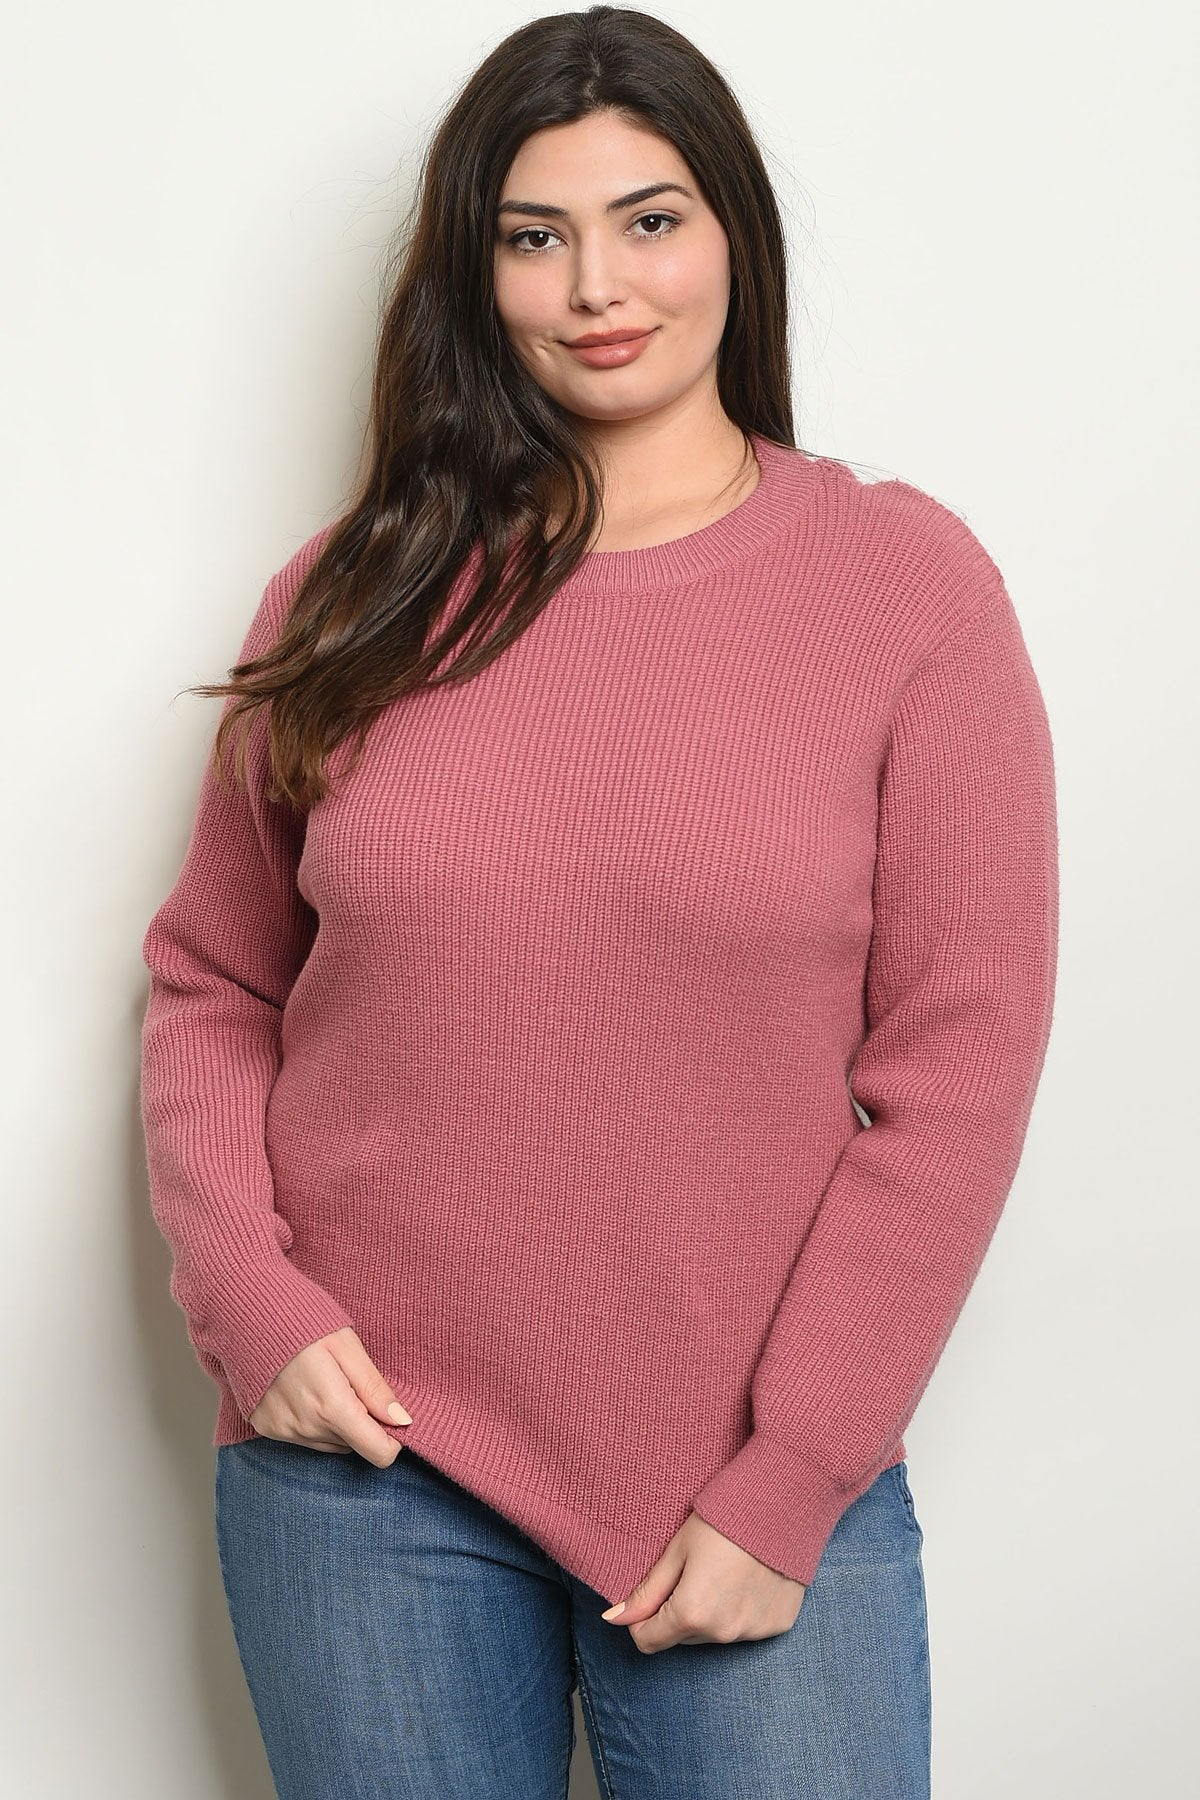 Womens Plus Size Sweater - Manifest Best Boutique